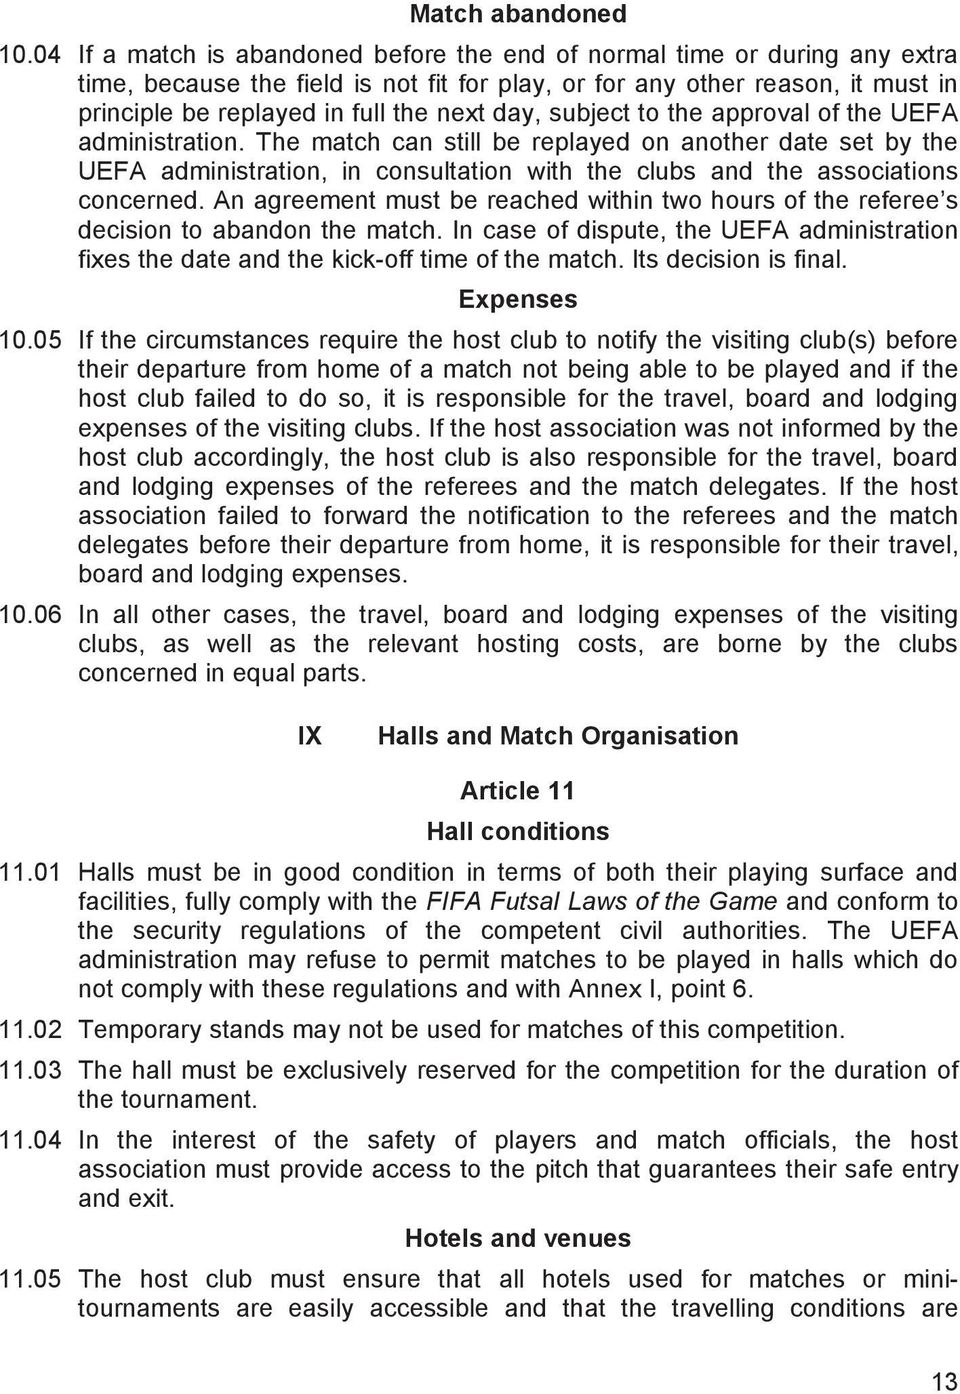 day, subject to the approval of the UEFA administration. The match can still be replayed on another date set by the UEFA administration, in consultation with the clubs and the associations concerned.